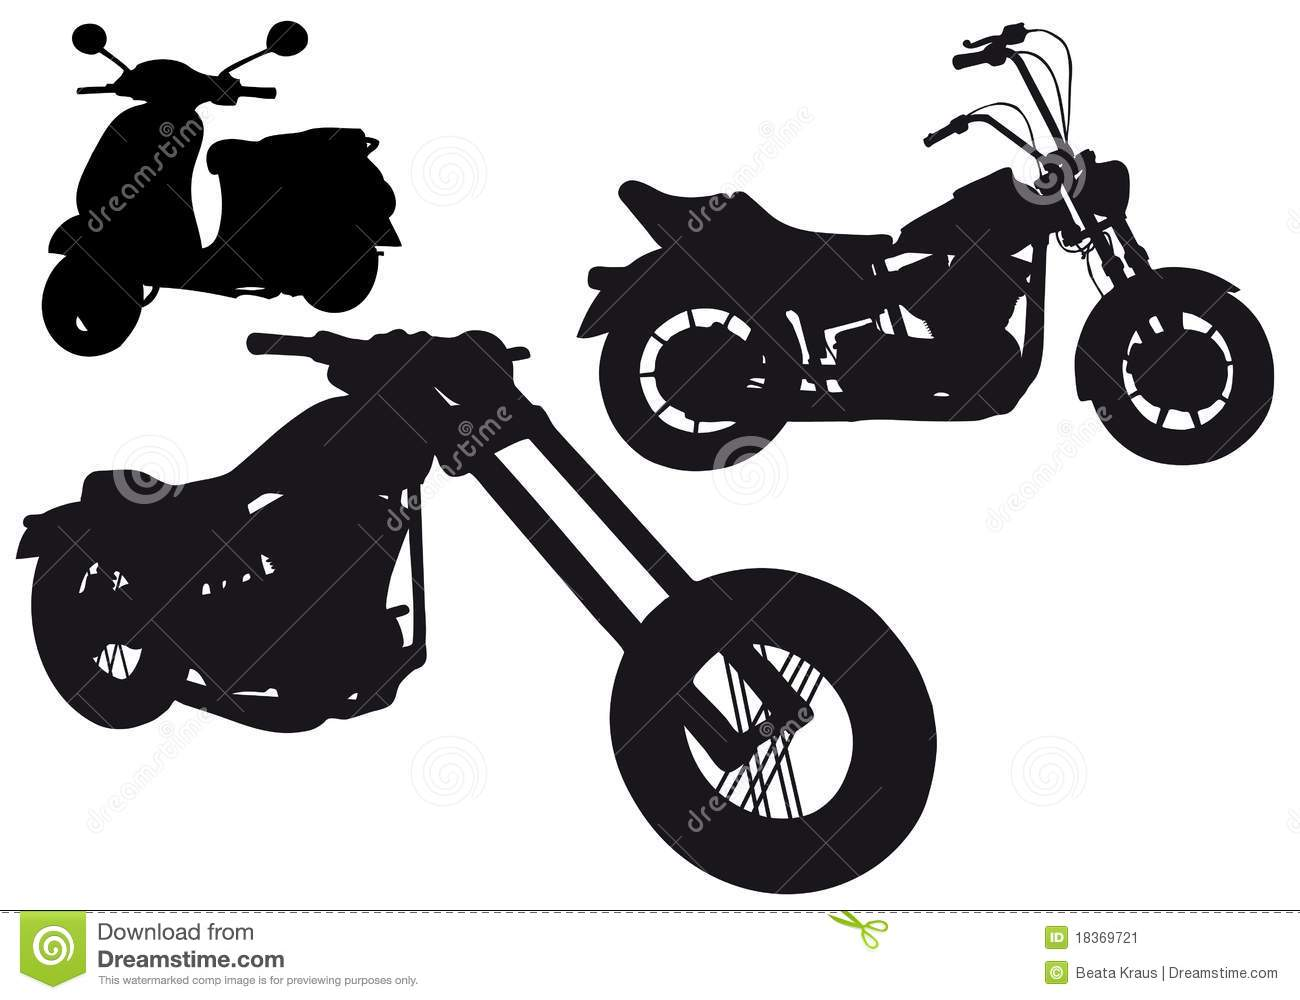 Harley Davidson clipart classic motorcycle Images 34 about silhouette Pinterest